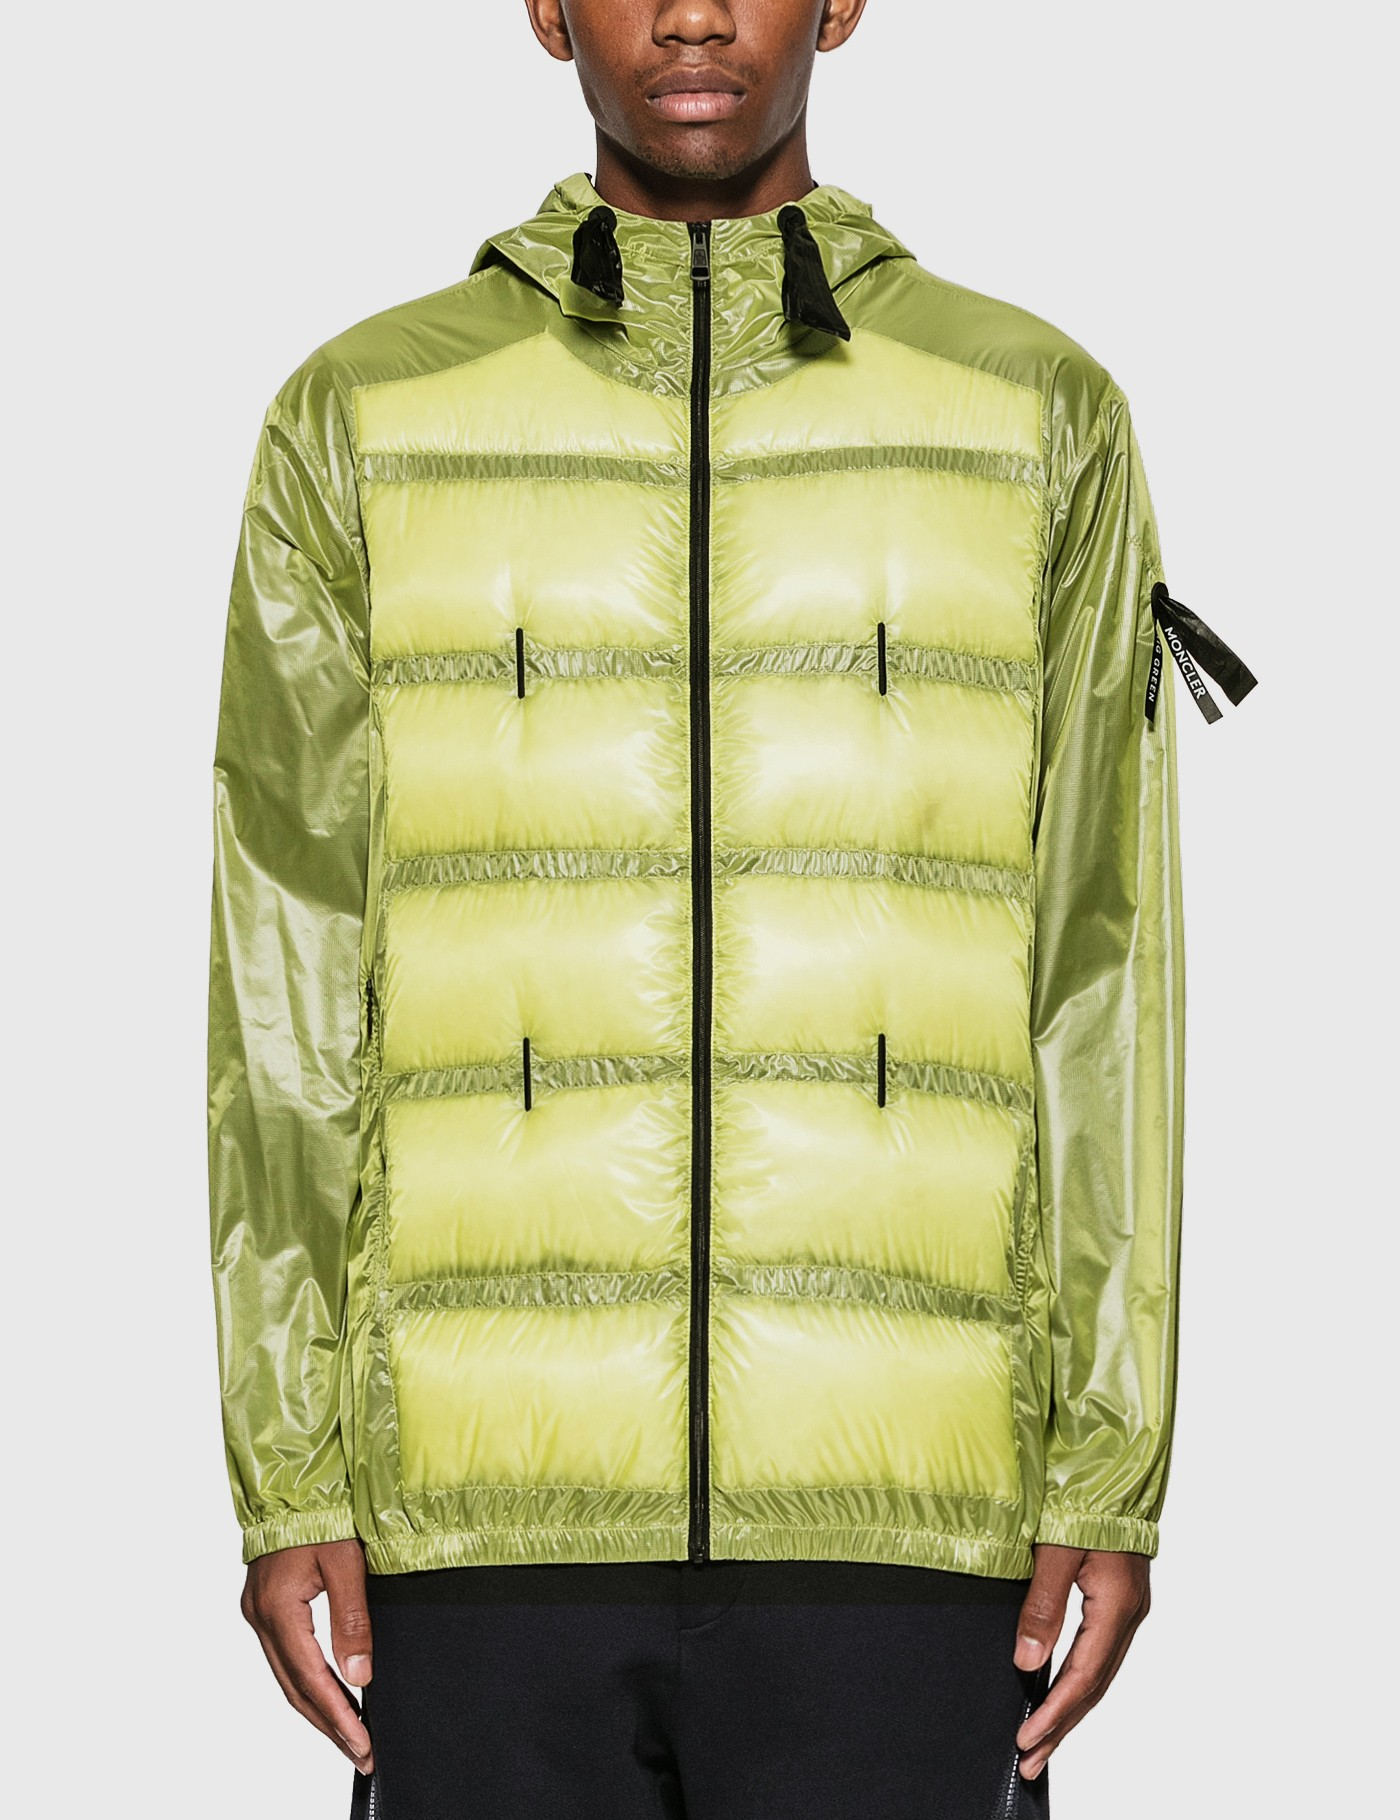 Moncler Genius Downs X CRAIG GREEN HILES DOWN JACKET